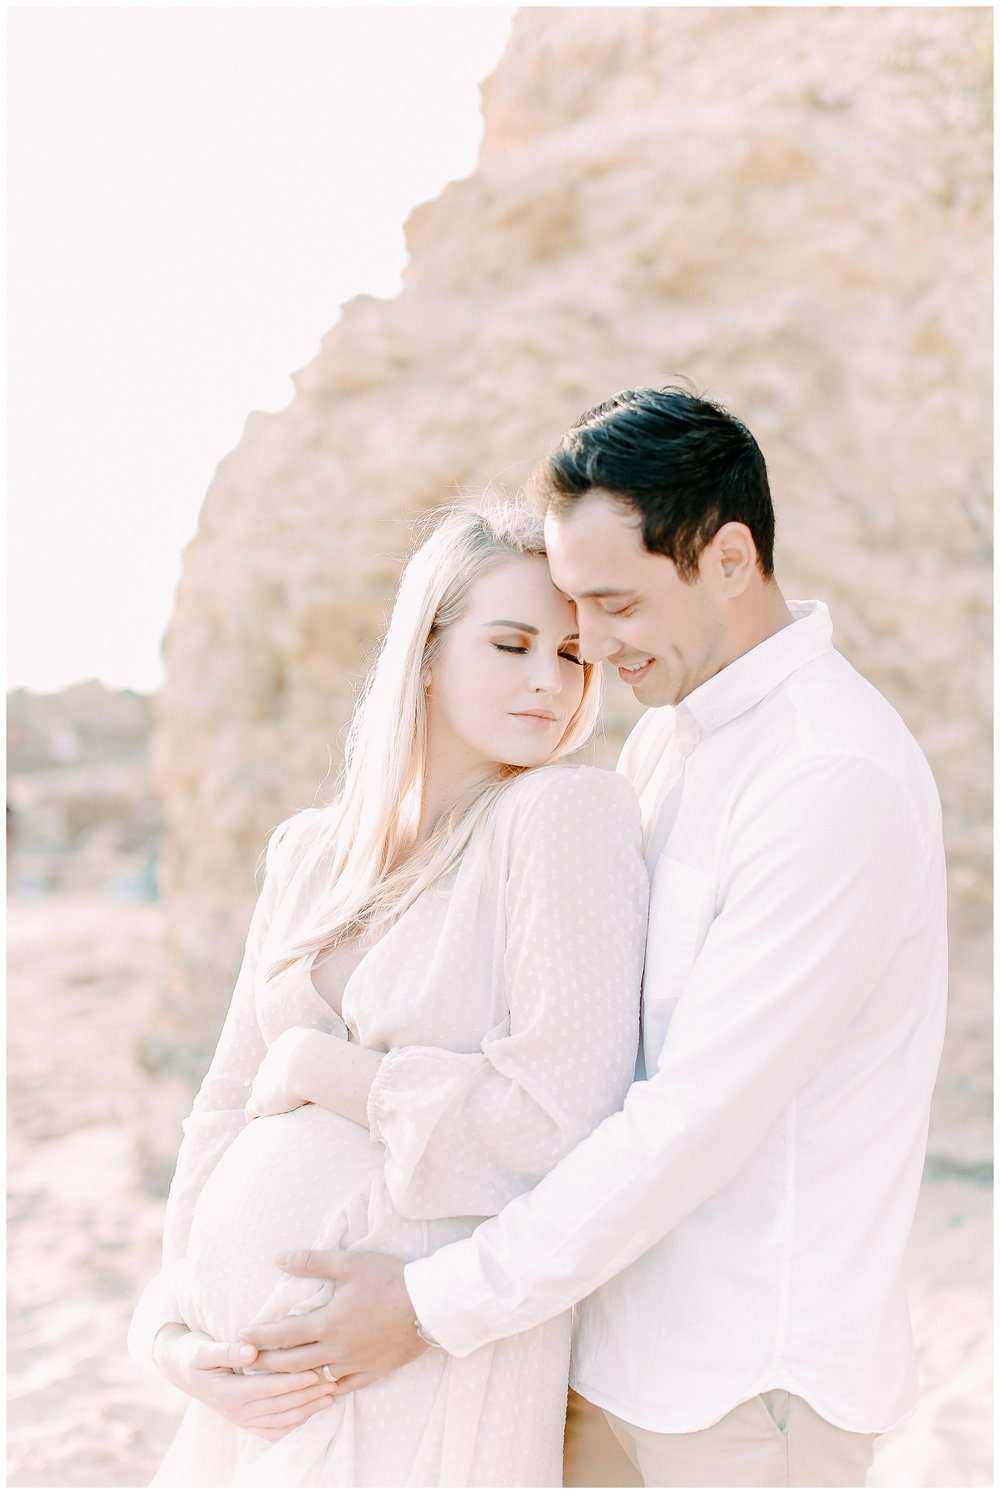 Little_Corona_Beach_Maternity_Session_Orange_county_family_photographer_cori_kleckner_photography_laguna_beach_family_session_0739.jpg